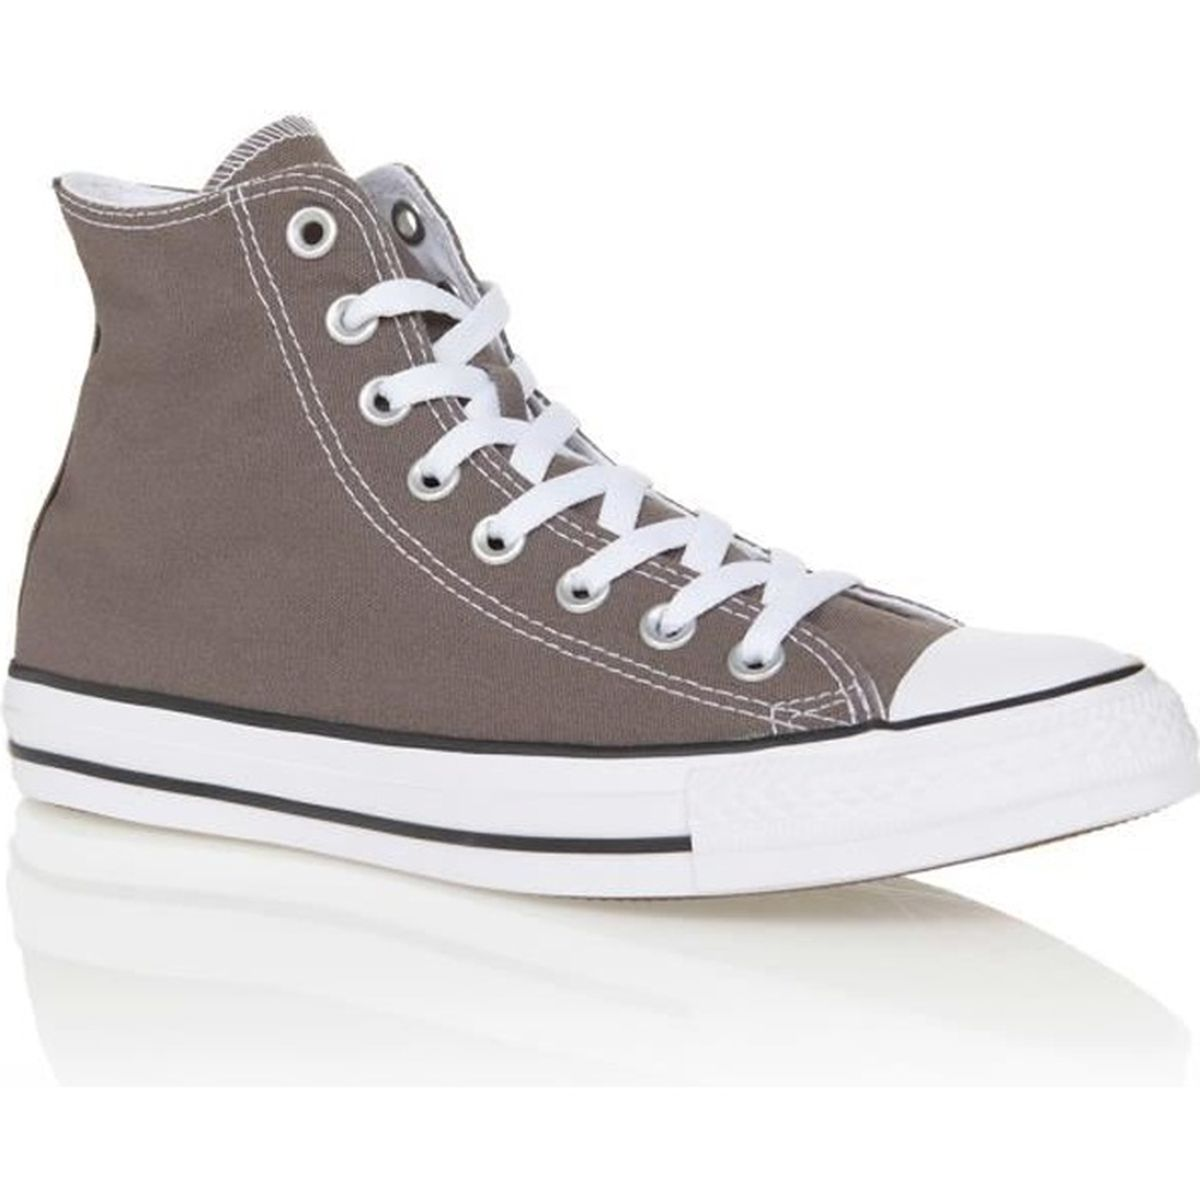 9 Taylor Star hauts M Side Chaussures Converse Femme Taille